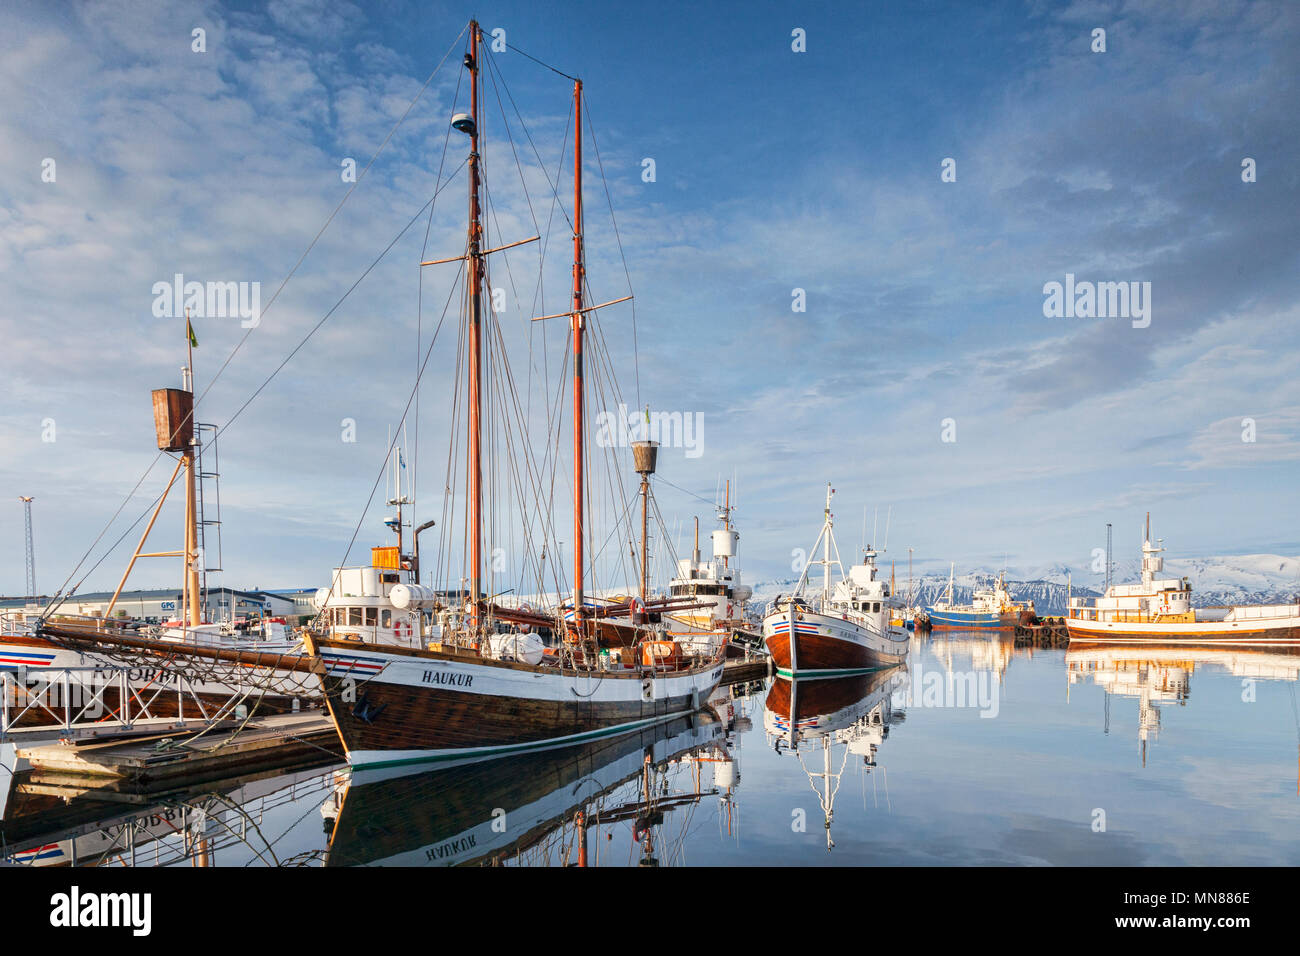 13 April 2018: Husavik, Iceland. The harbour at Husavik in Northern Iceland, with whale-watching vessels reflected in the calm water. - Stock Image